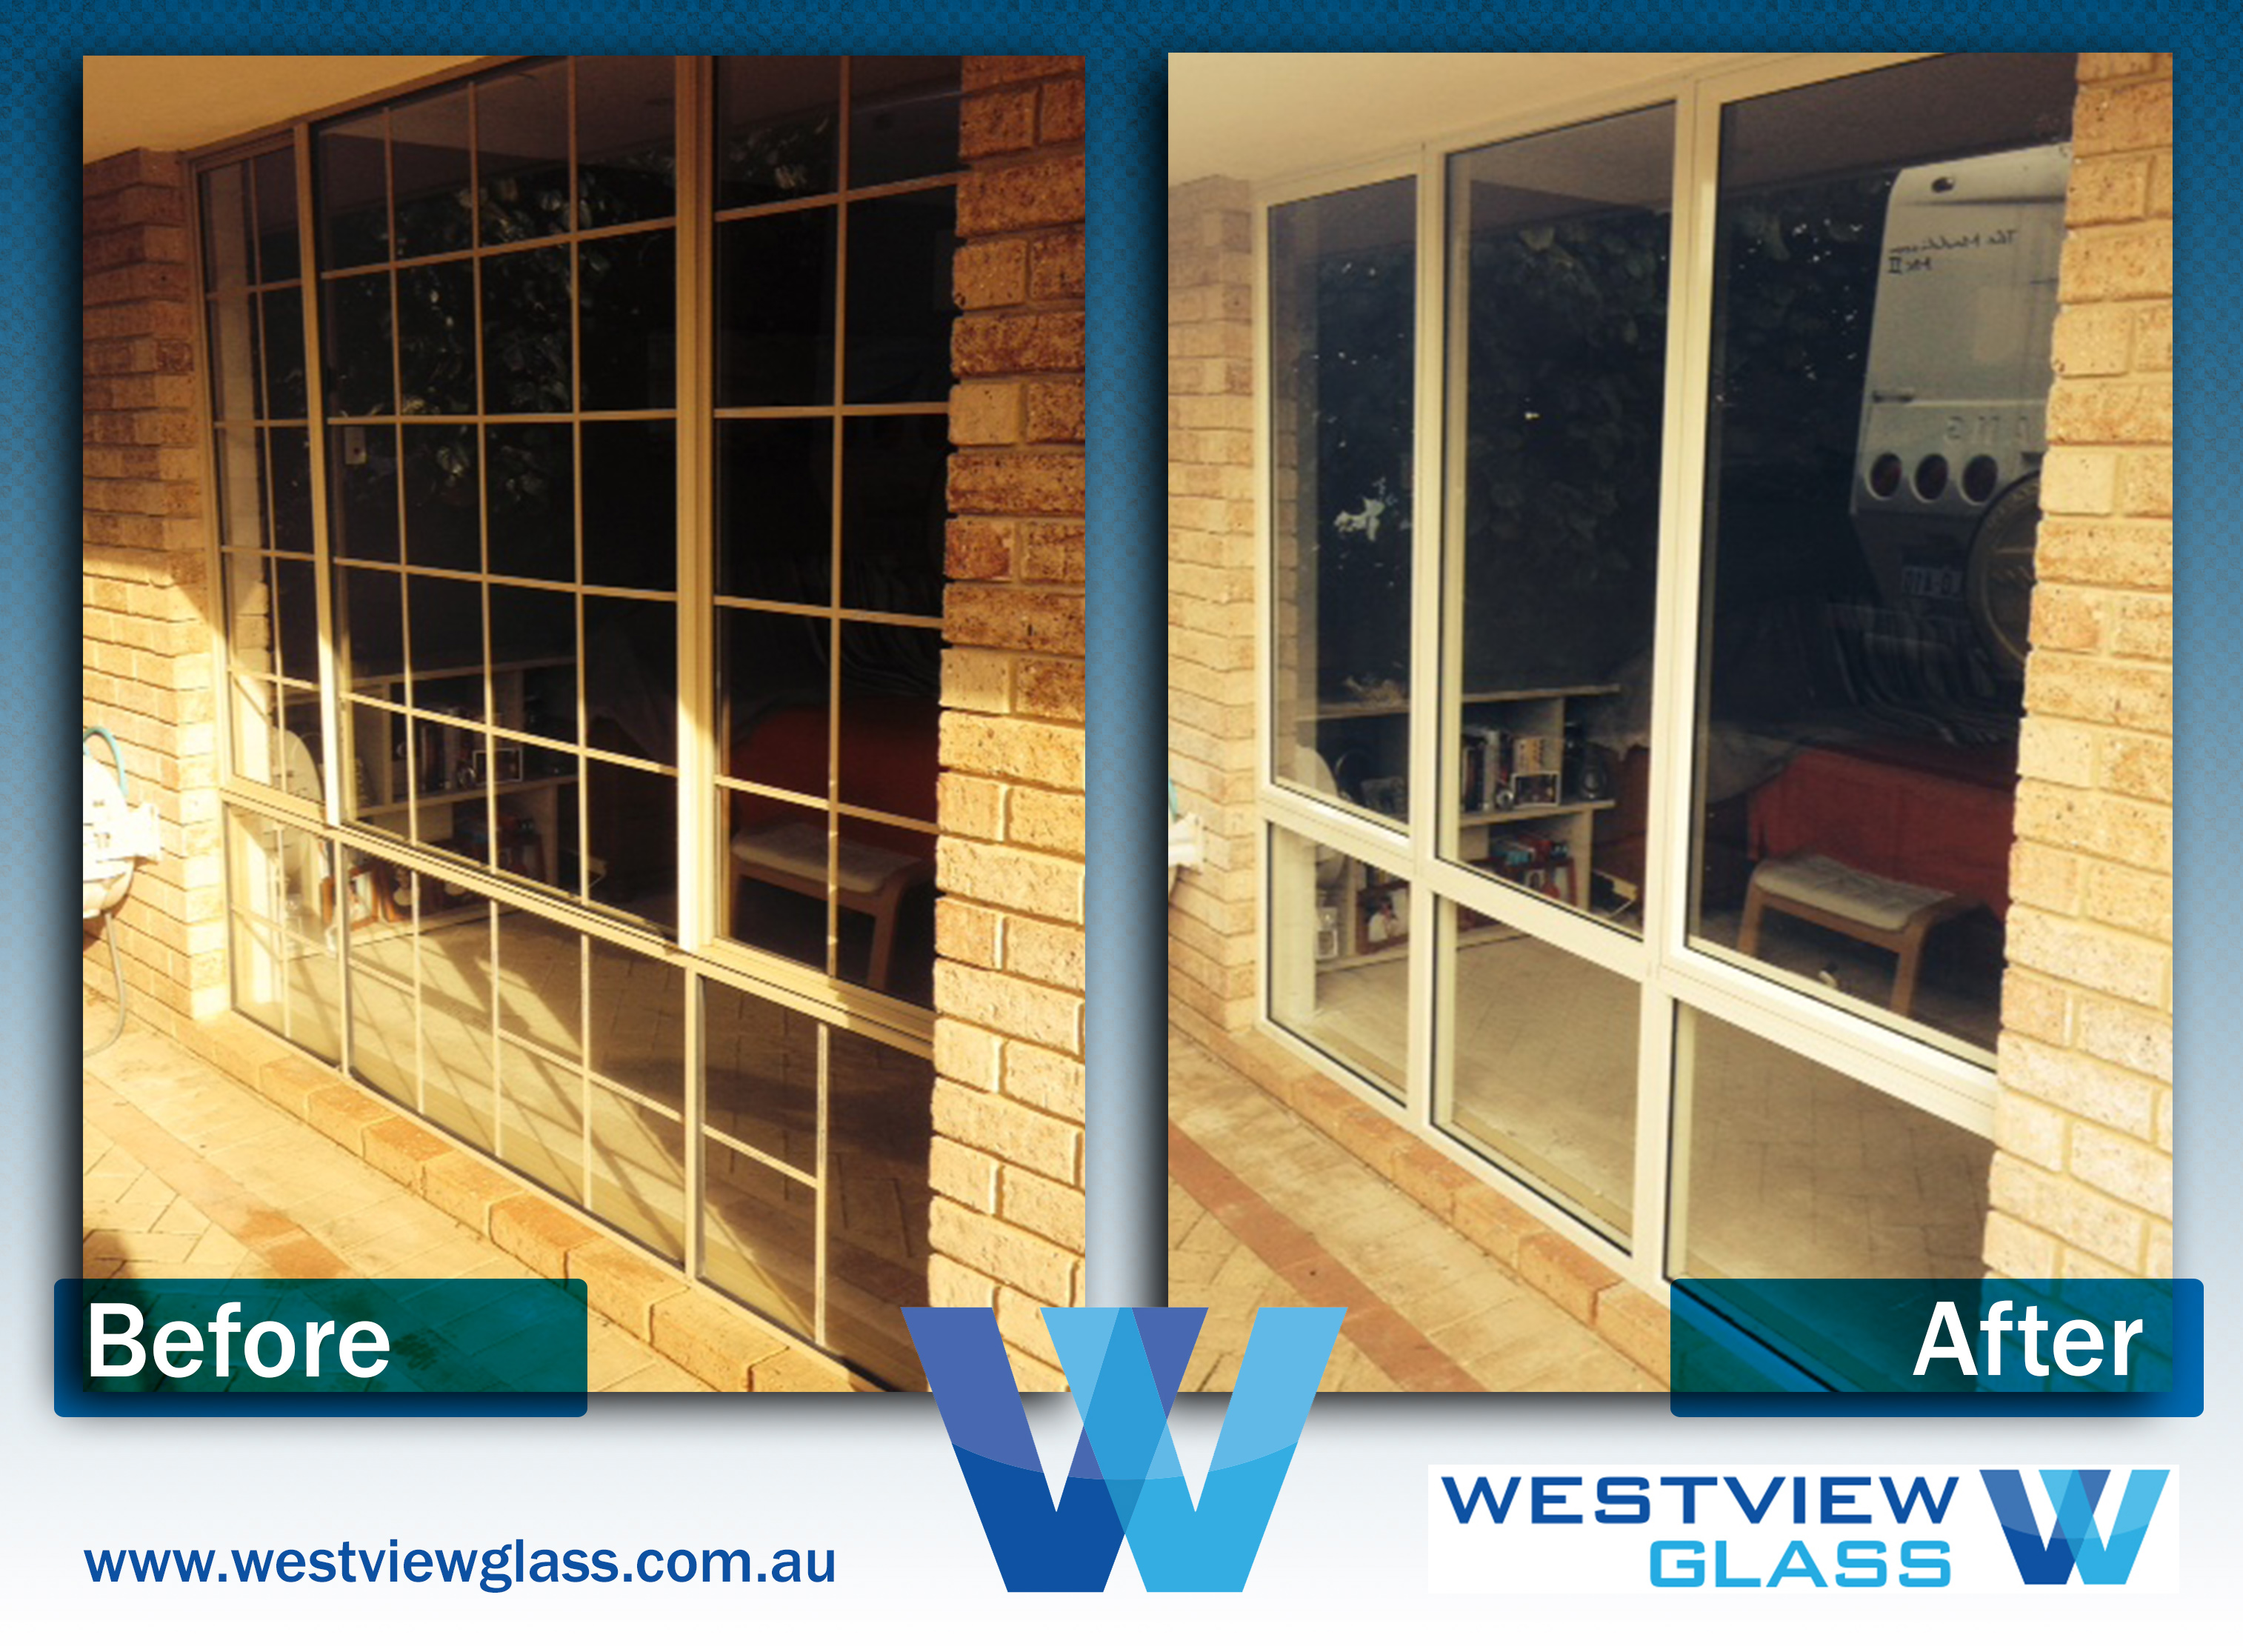 Awning Windows 6lite Slider with Colonial Bars 6lite Awning - Aluminium Window Gallery – Before & After